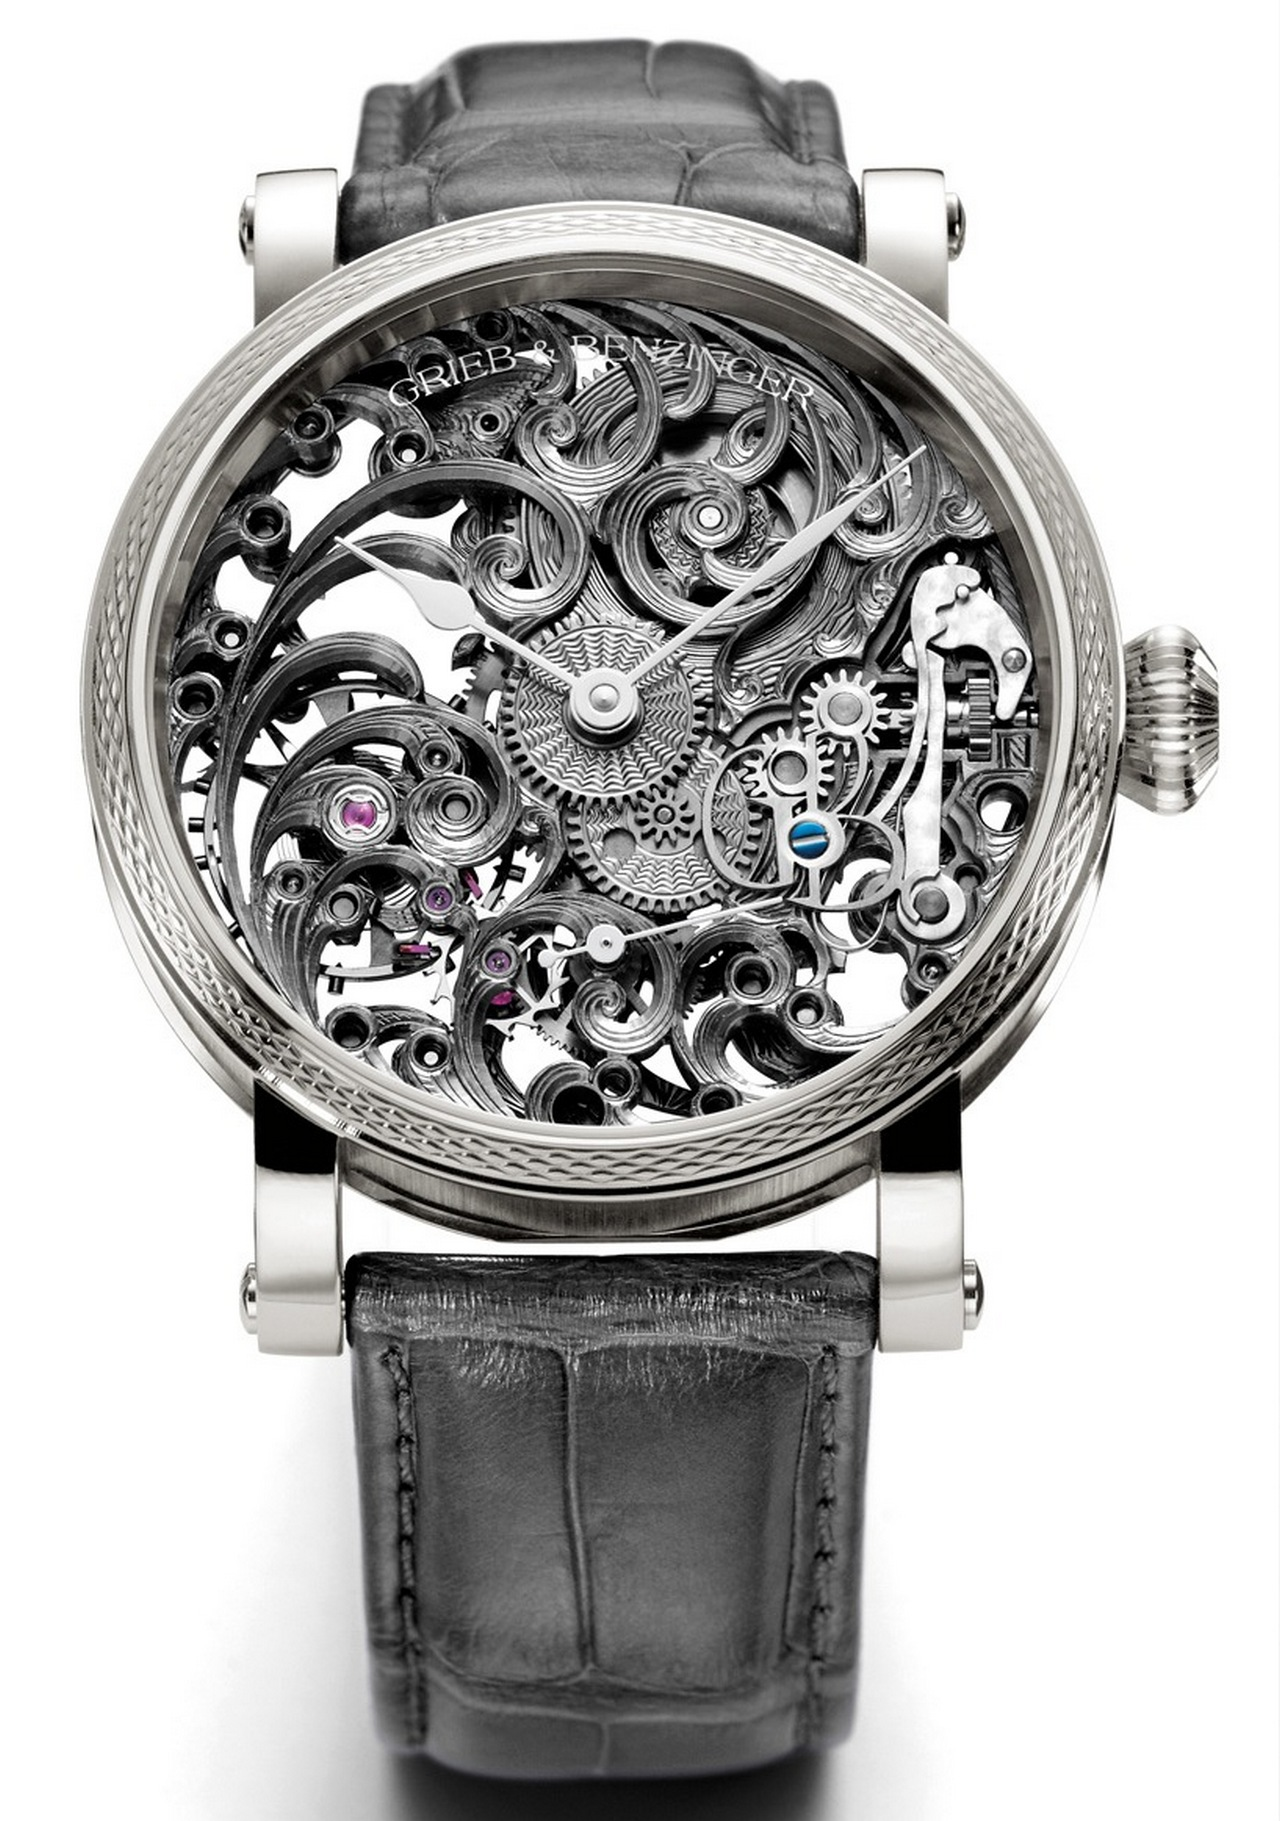 shades-of-grey-by-grieb-benzinger_0-100_3